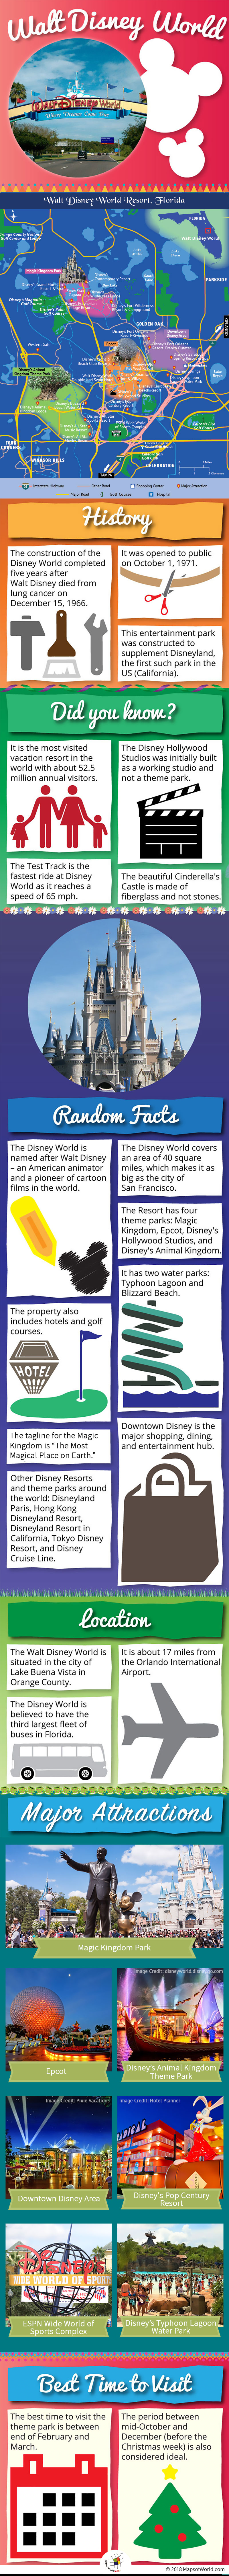 Infographic Depicting Walt Disney World Fast Facts